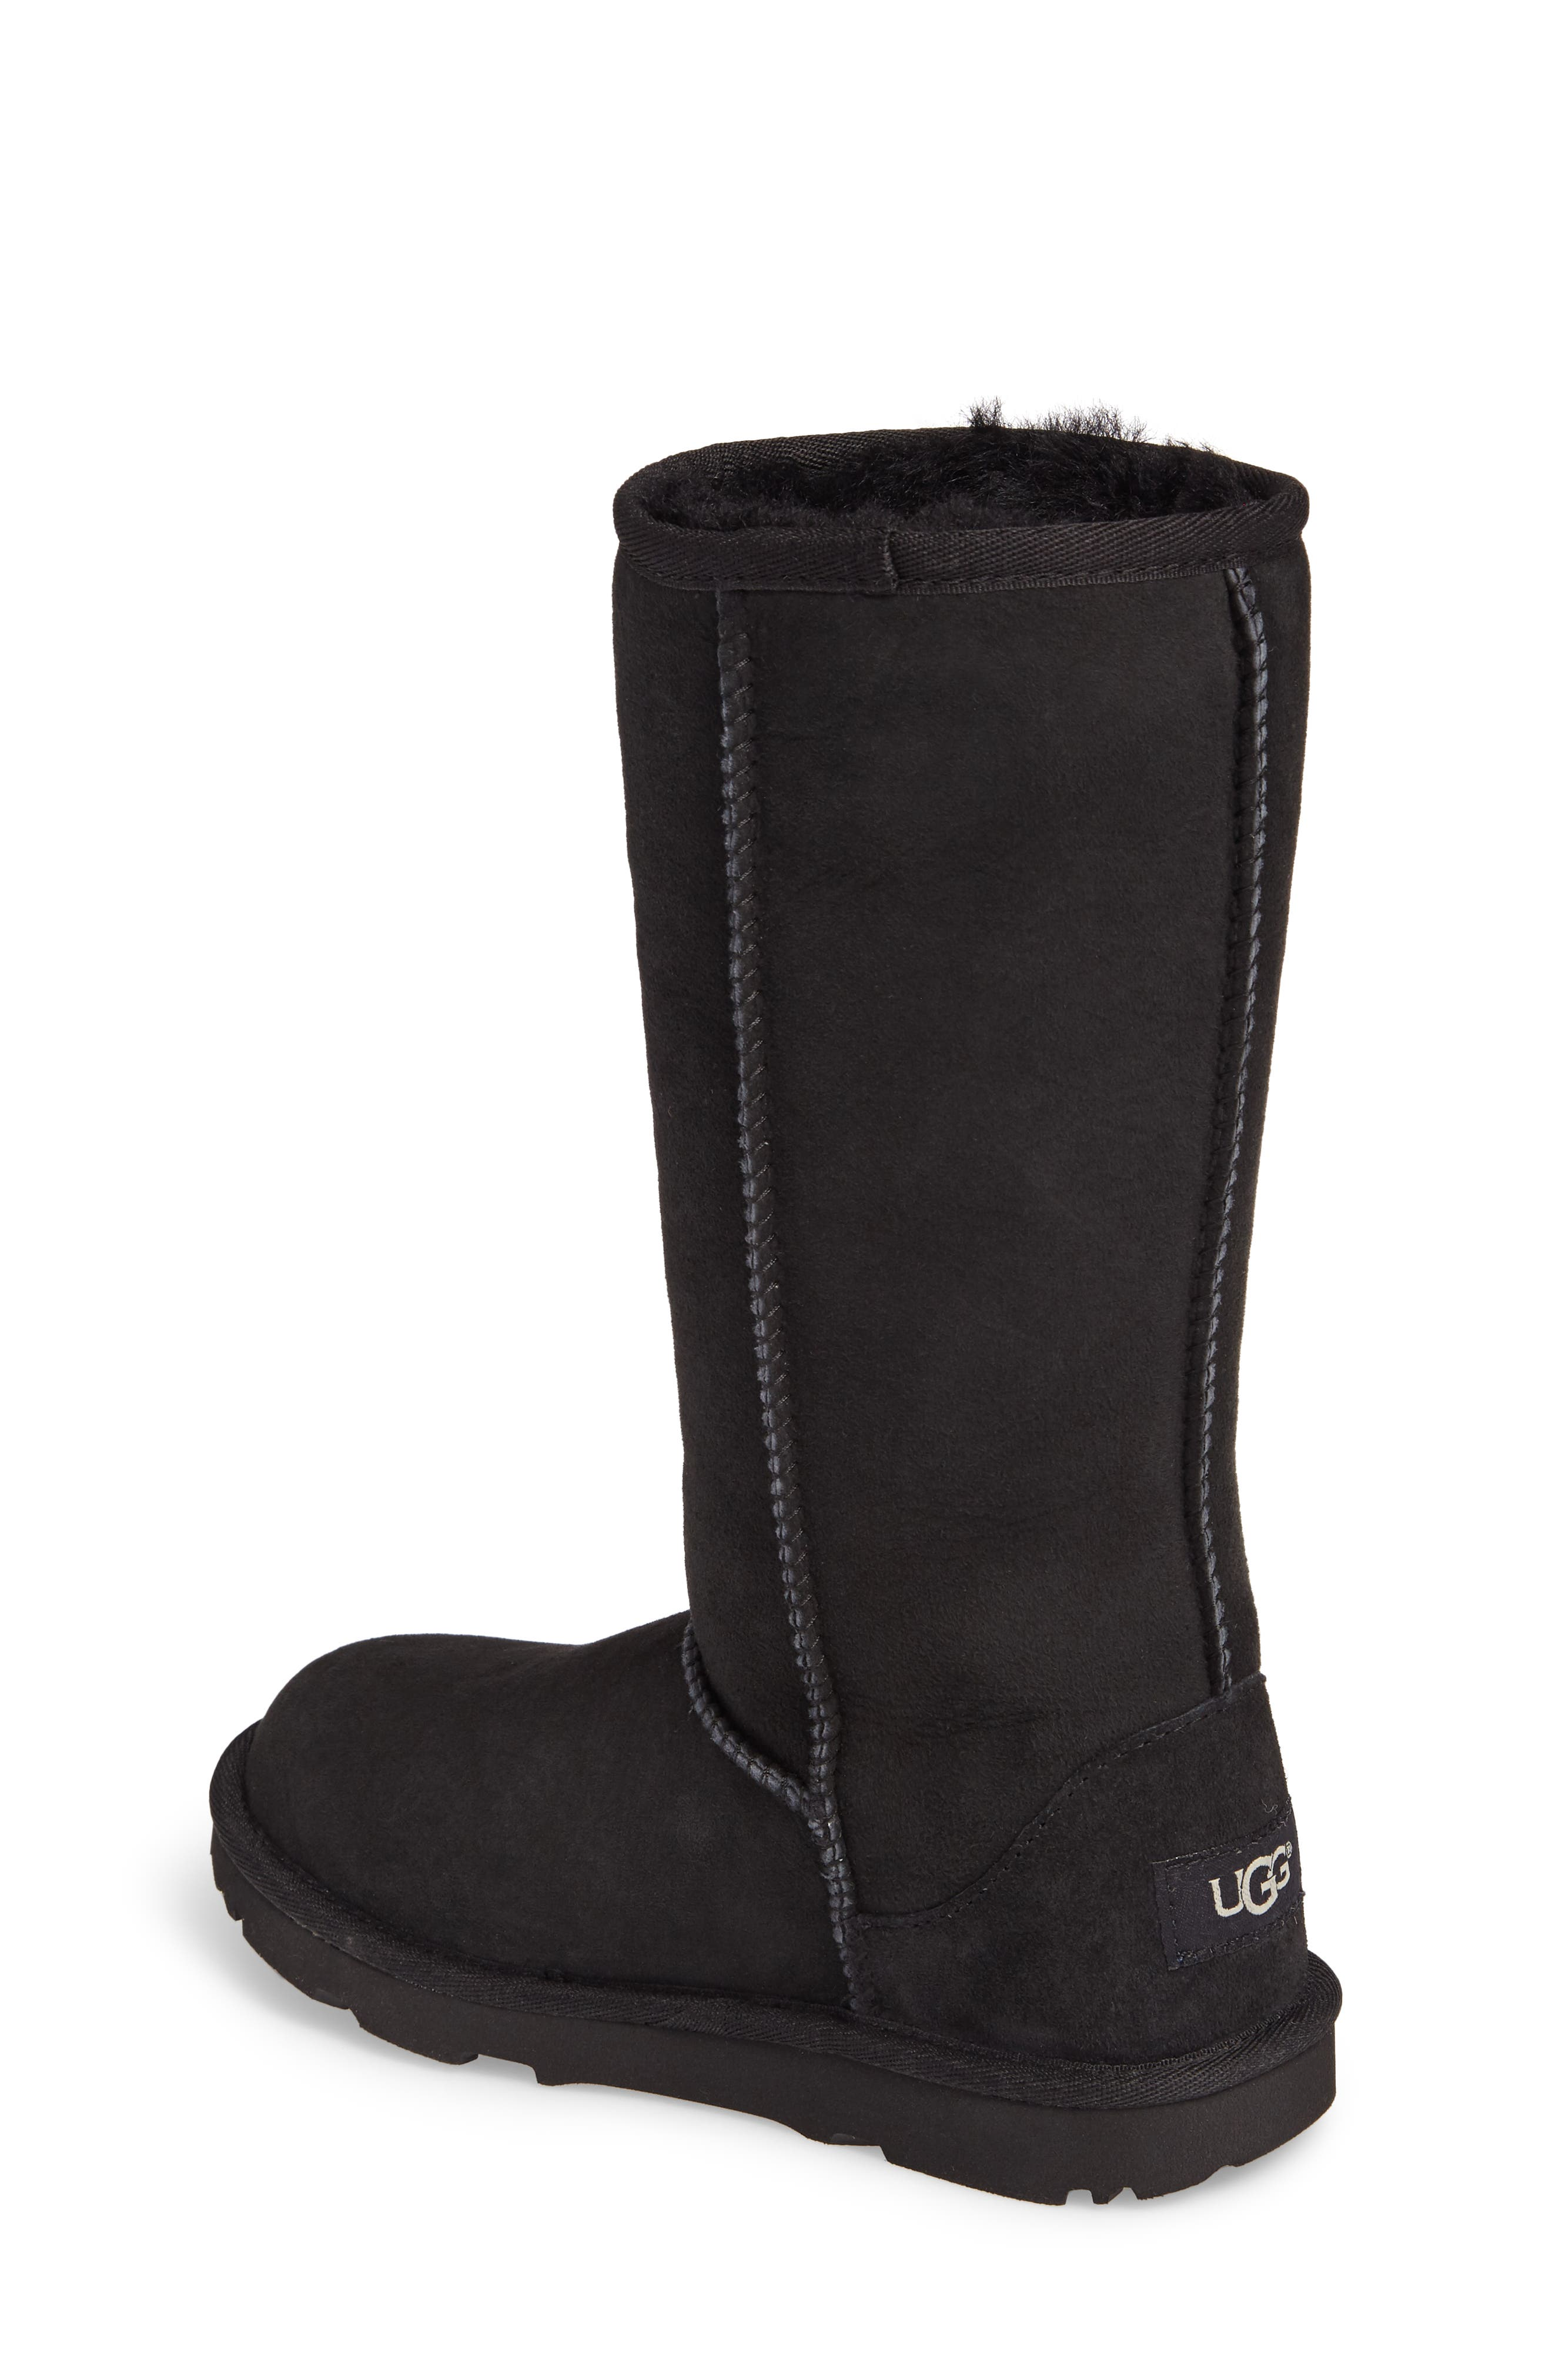 UGG<SUP>®</SUP>, Classic II Water-Resistant Tall Boot, Alternate thumbnail 2, color, BLACK